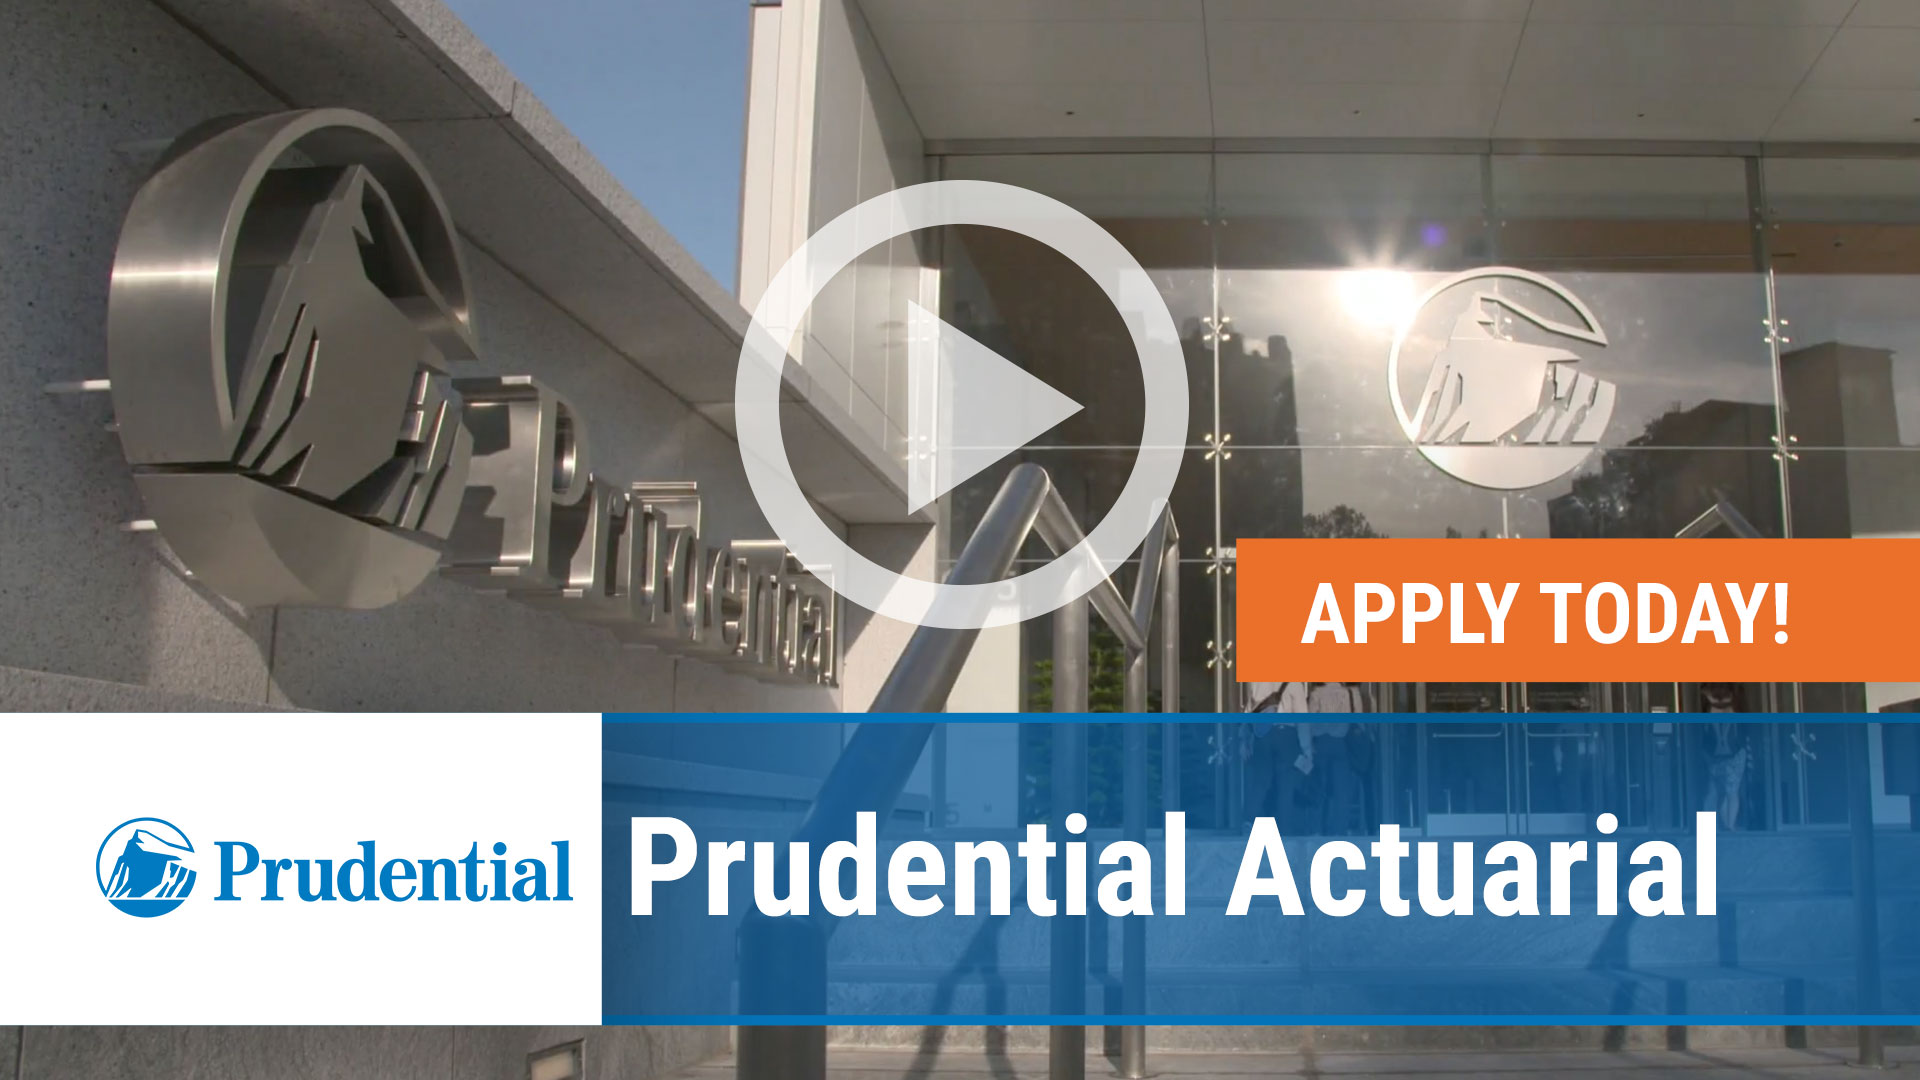 Watch our careers video for available job opening Prudential Actuarial in Iselin, NJ